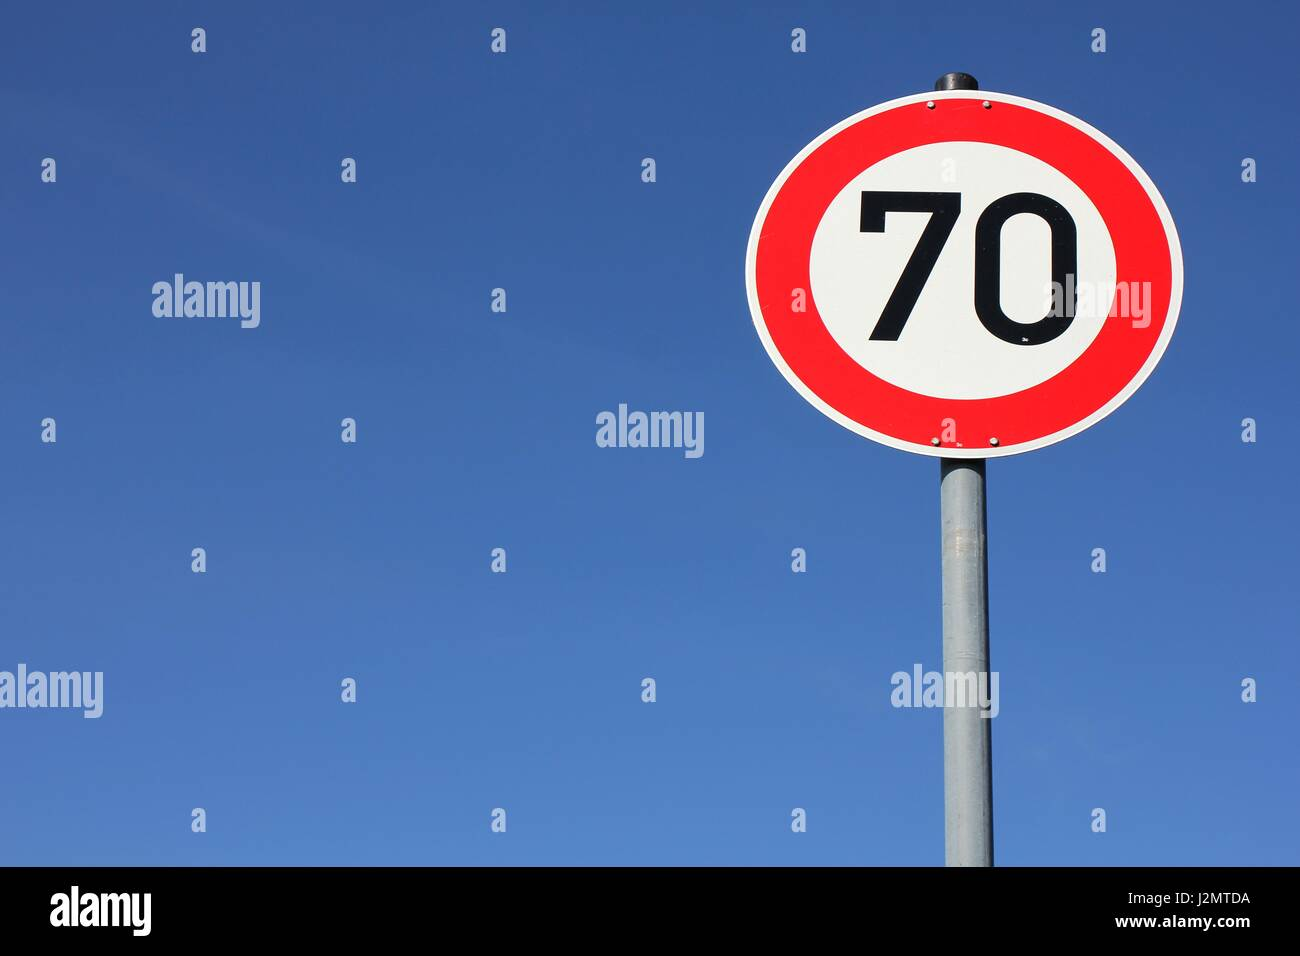 german speed limit traffic sign stockfotos german speed. Black Bedroom Furniture Sets. Home Design Ideas